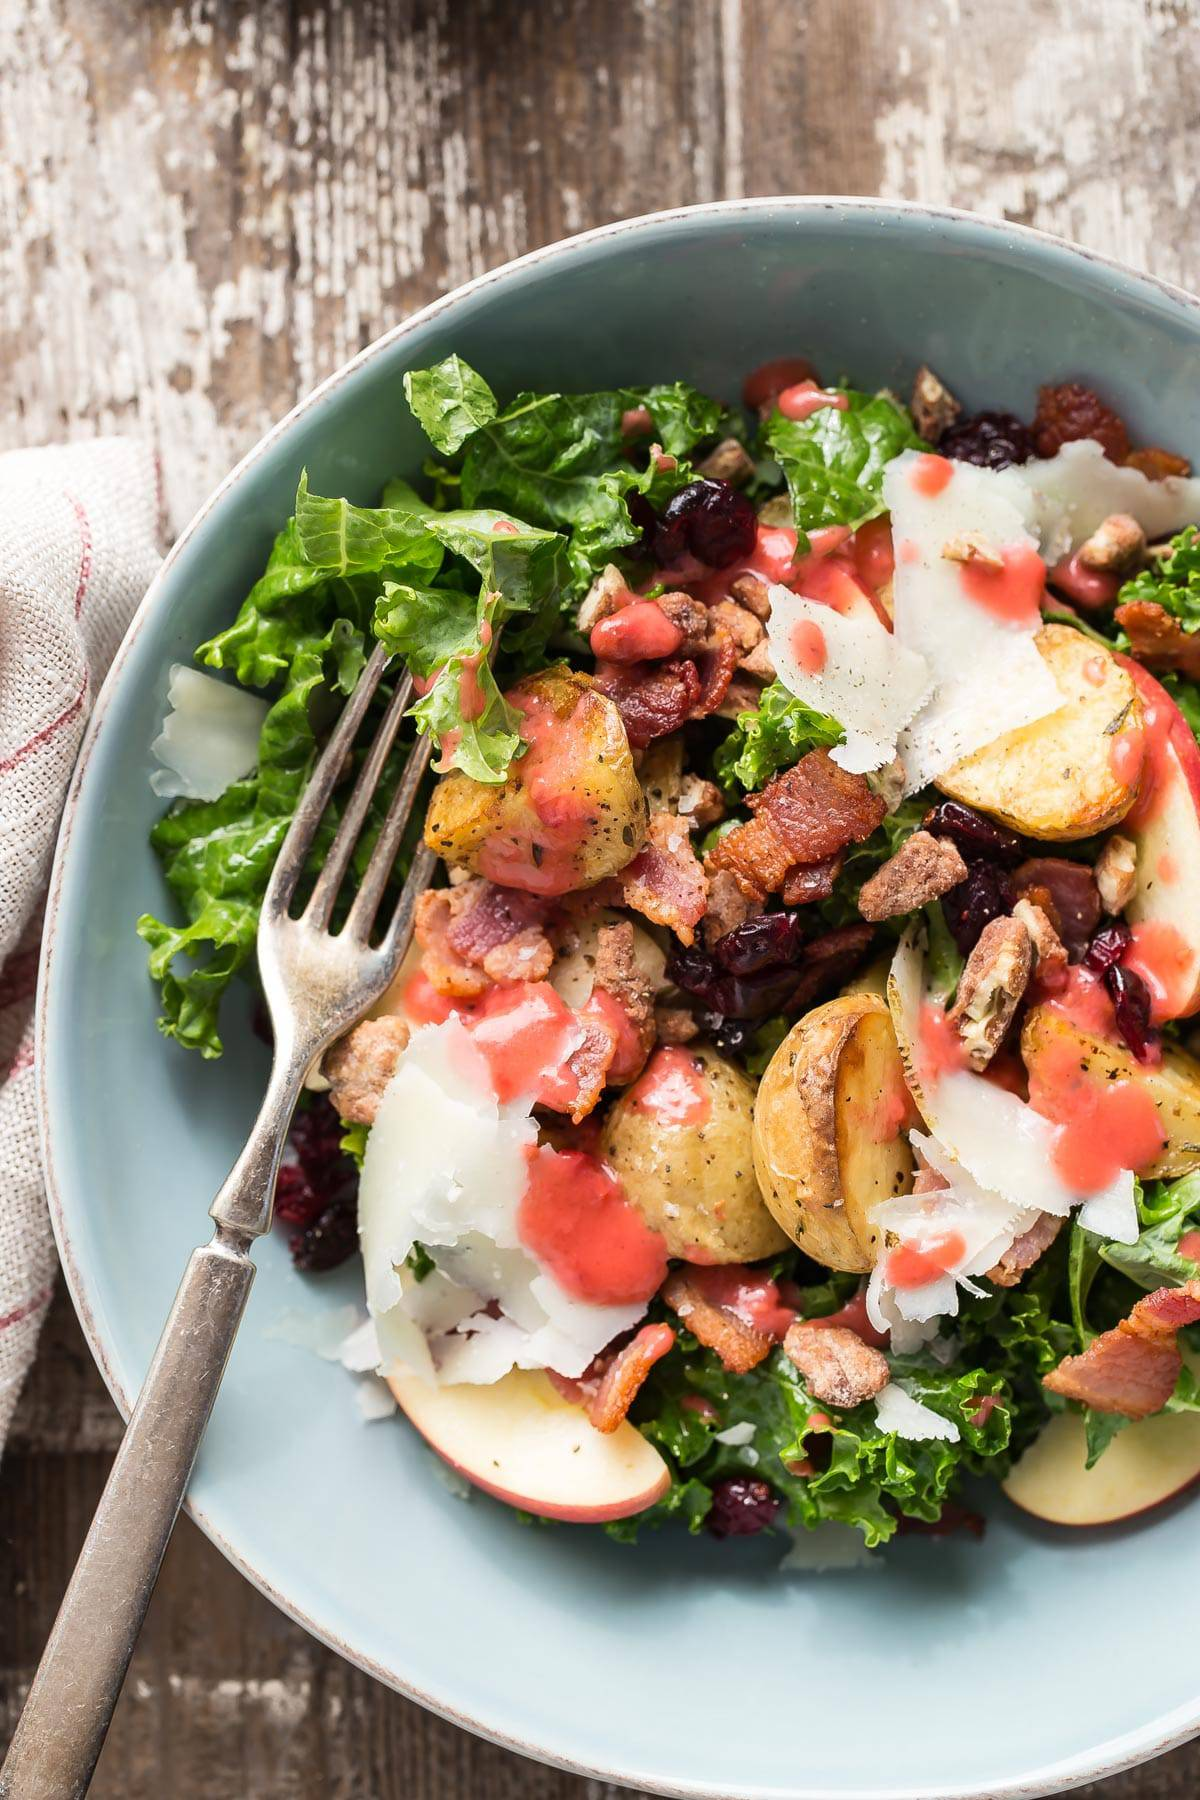 Warm Kale Salad with Roasted Potatoes and Bacon